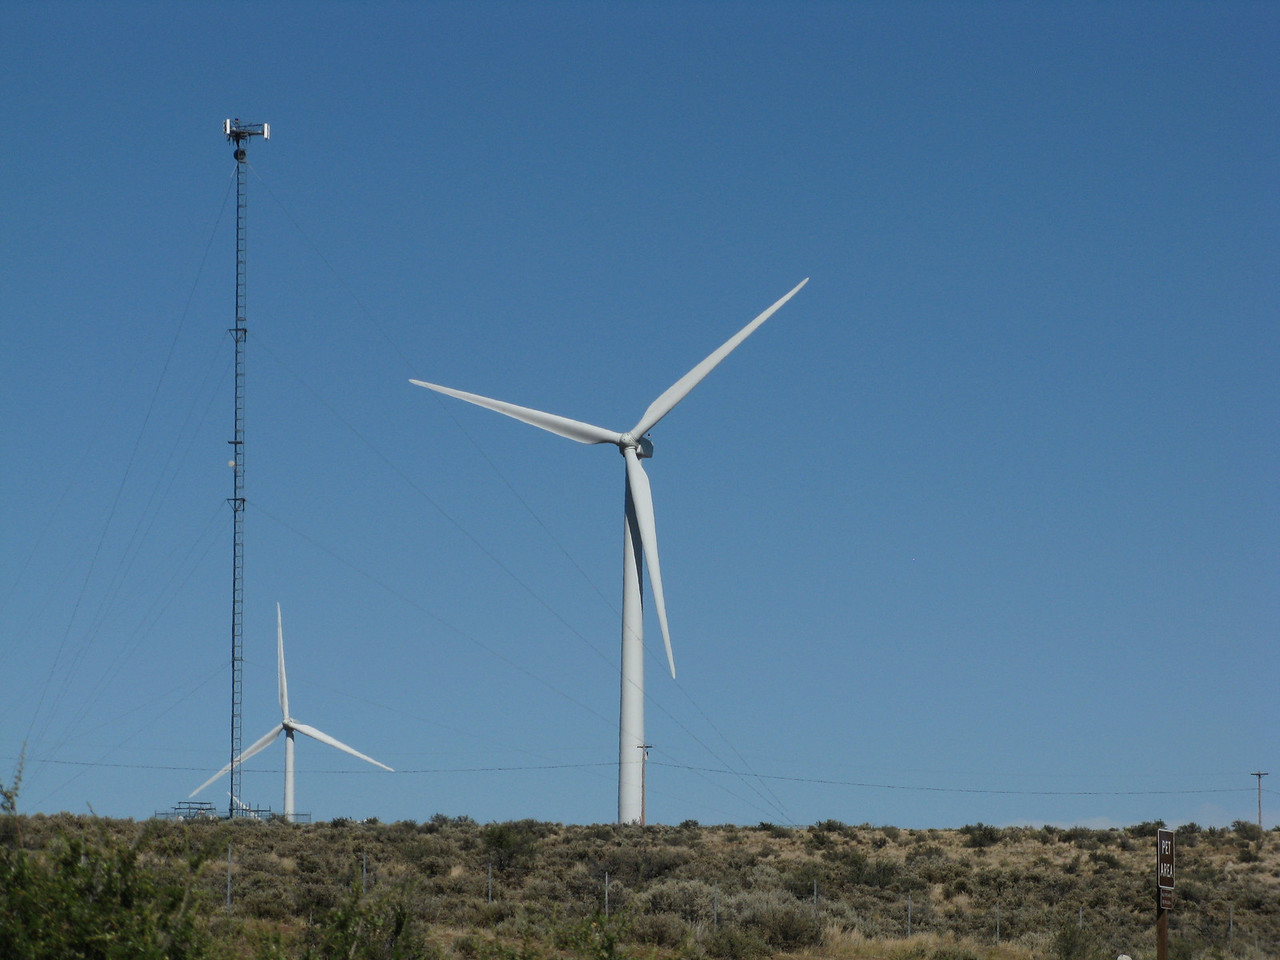 The Wild Horse wind farm came online in 2006 and it was expanded in 2009.